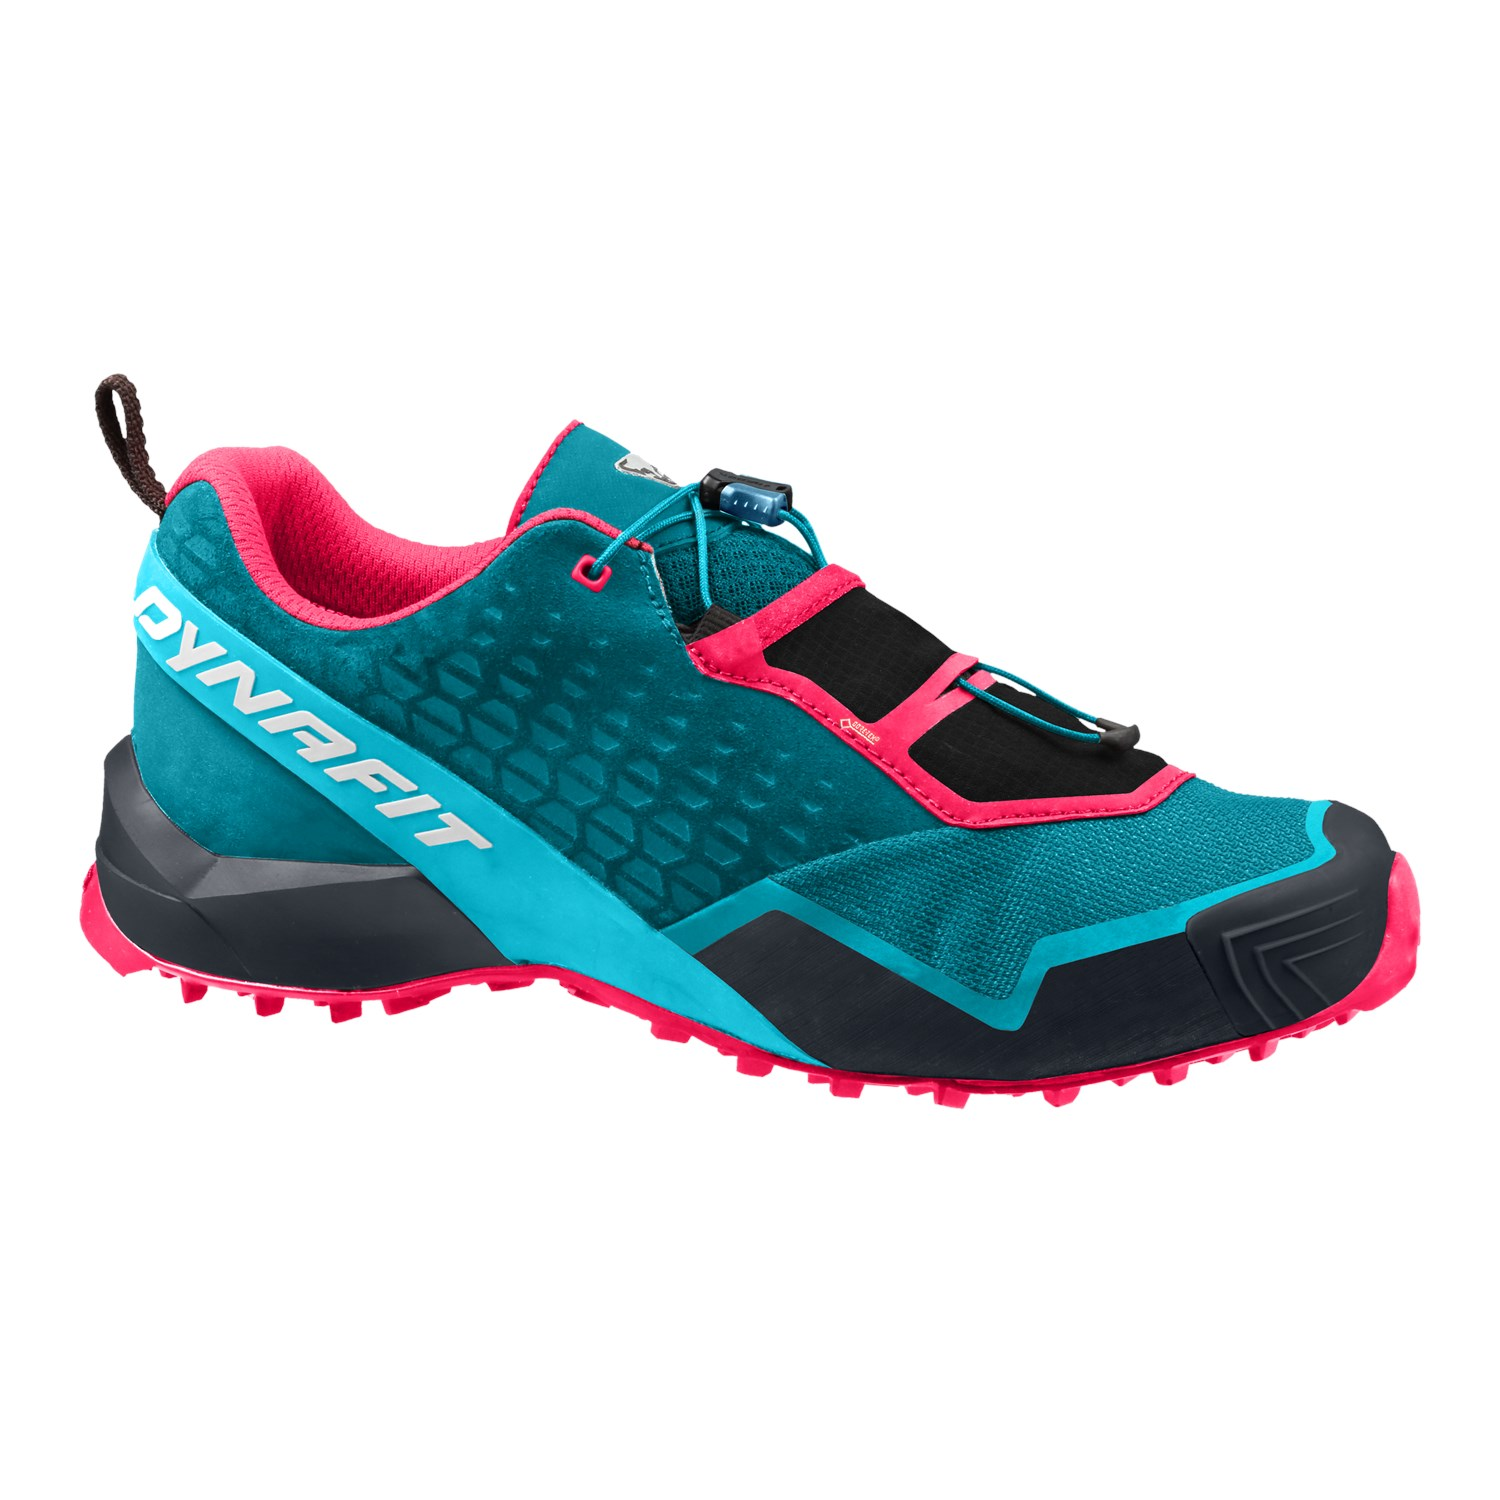 Dynafit Women's Speed MTN GTX - Intensives Wandern 8770 MALTA 6 d55ZNV